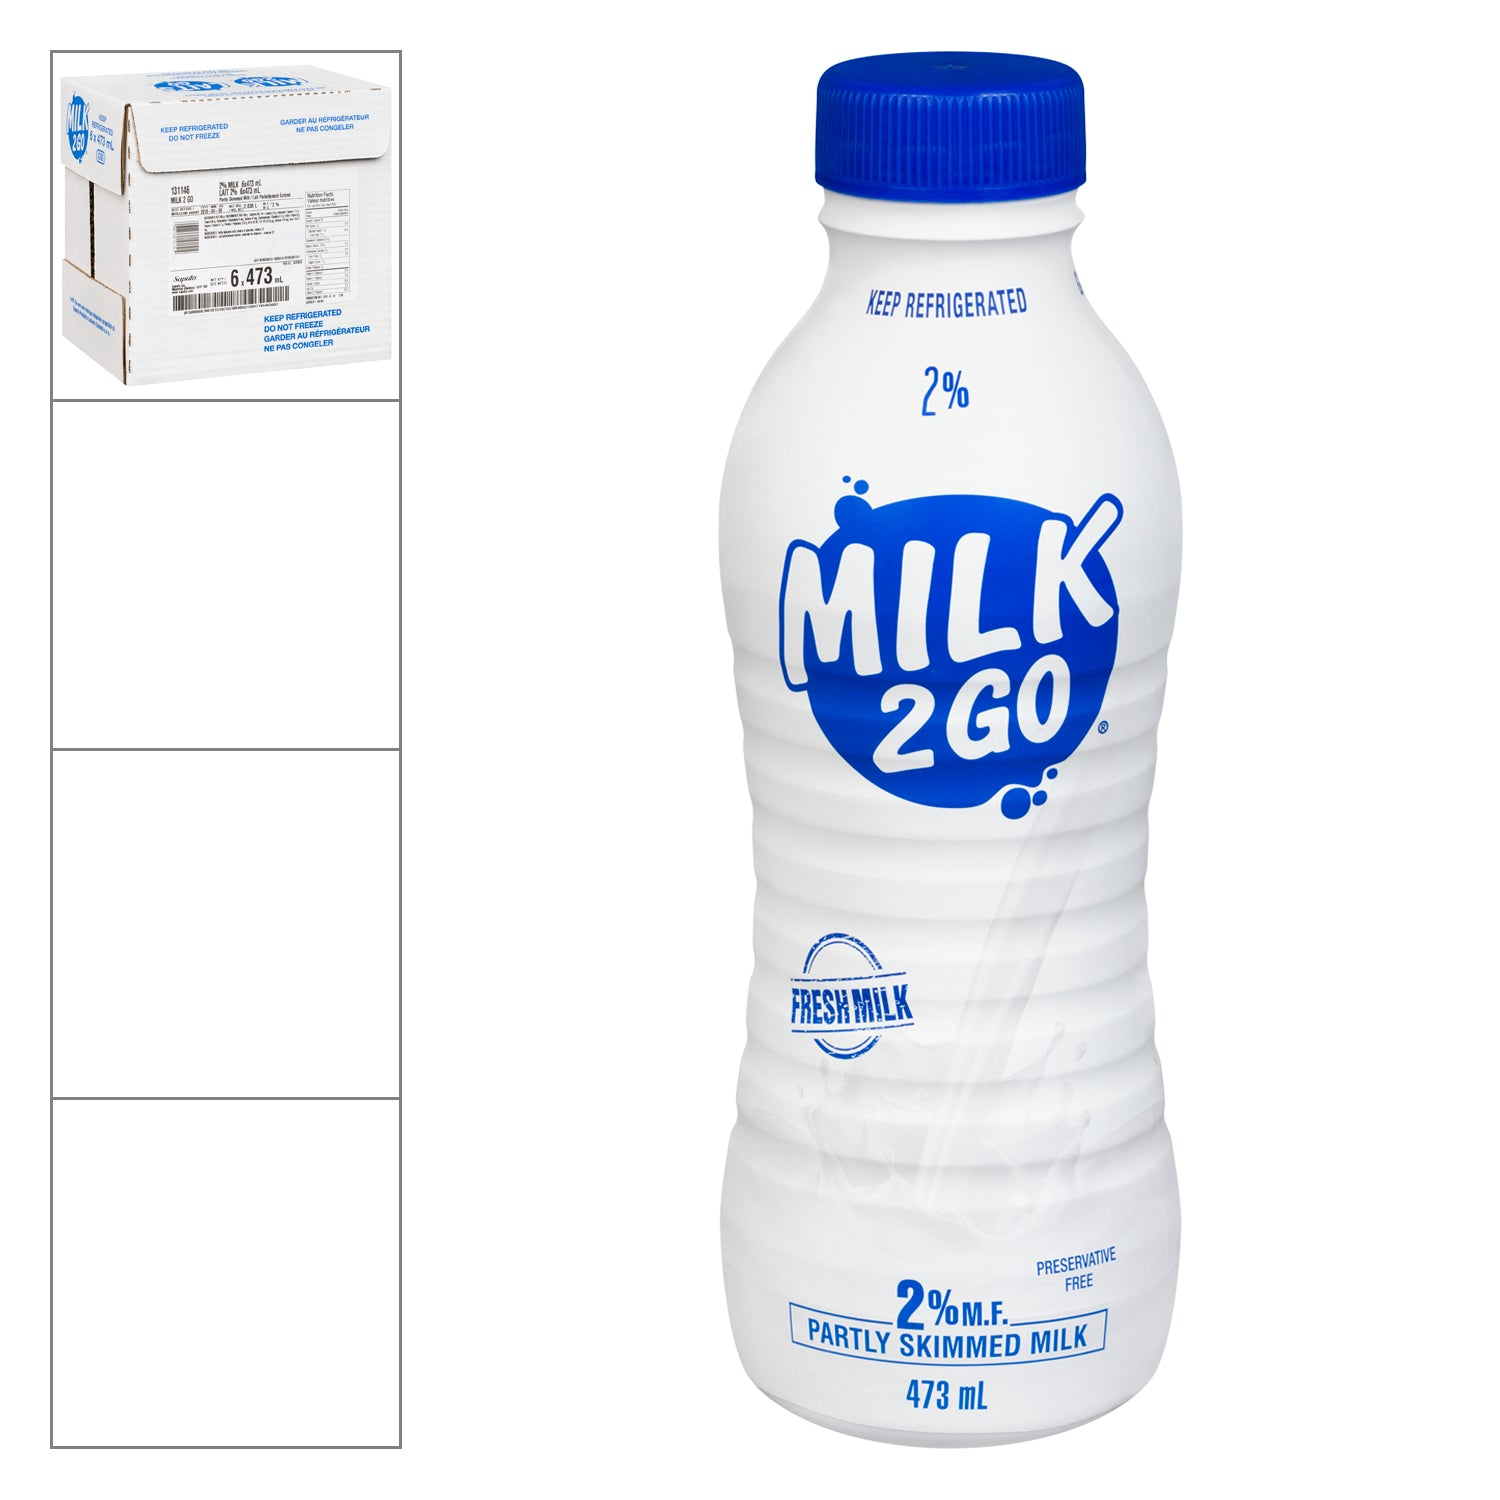 Milk2Go 2% 473 ml - 6 Pack [$1.50/bottle]